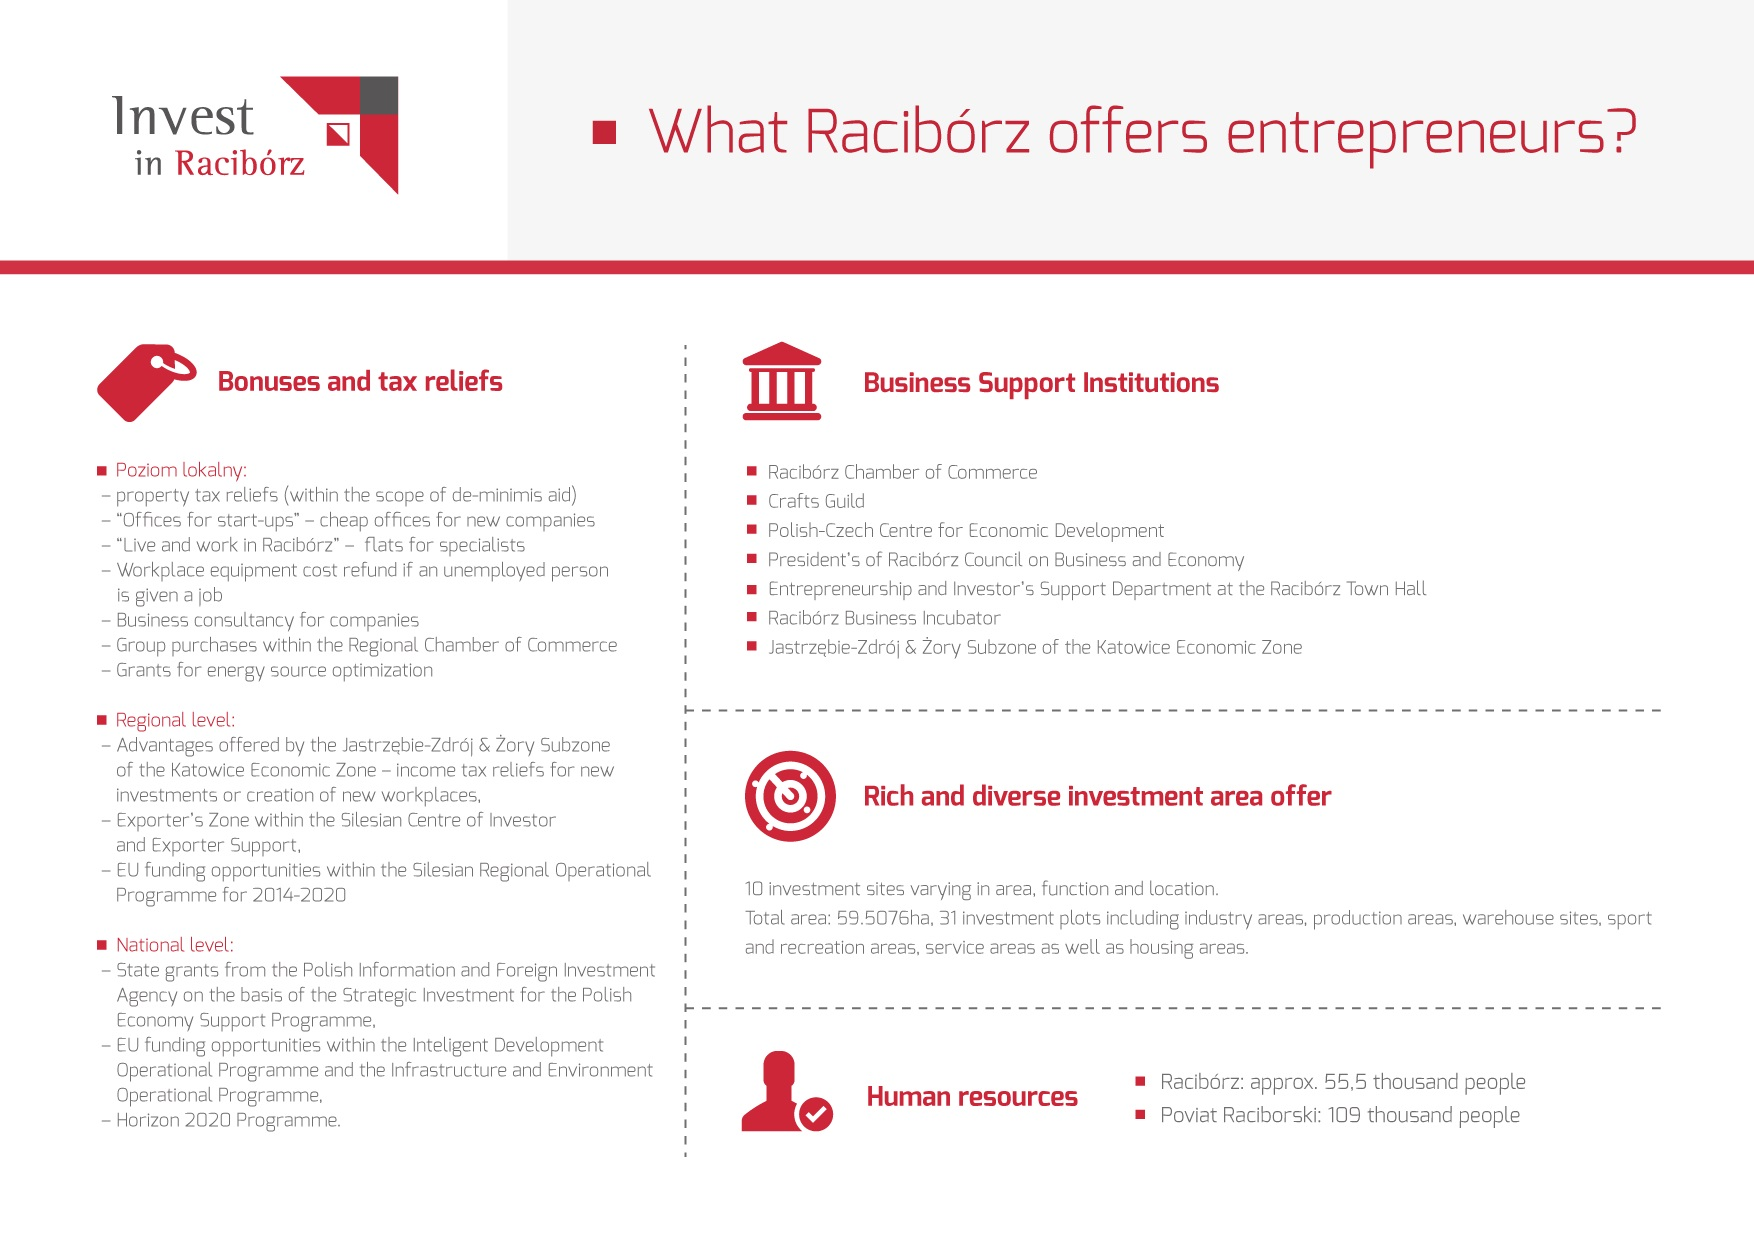 What Racibórz offers entreprenneurs